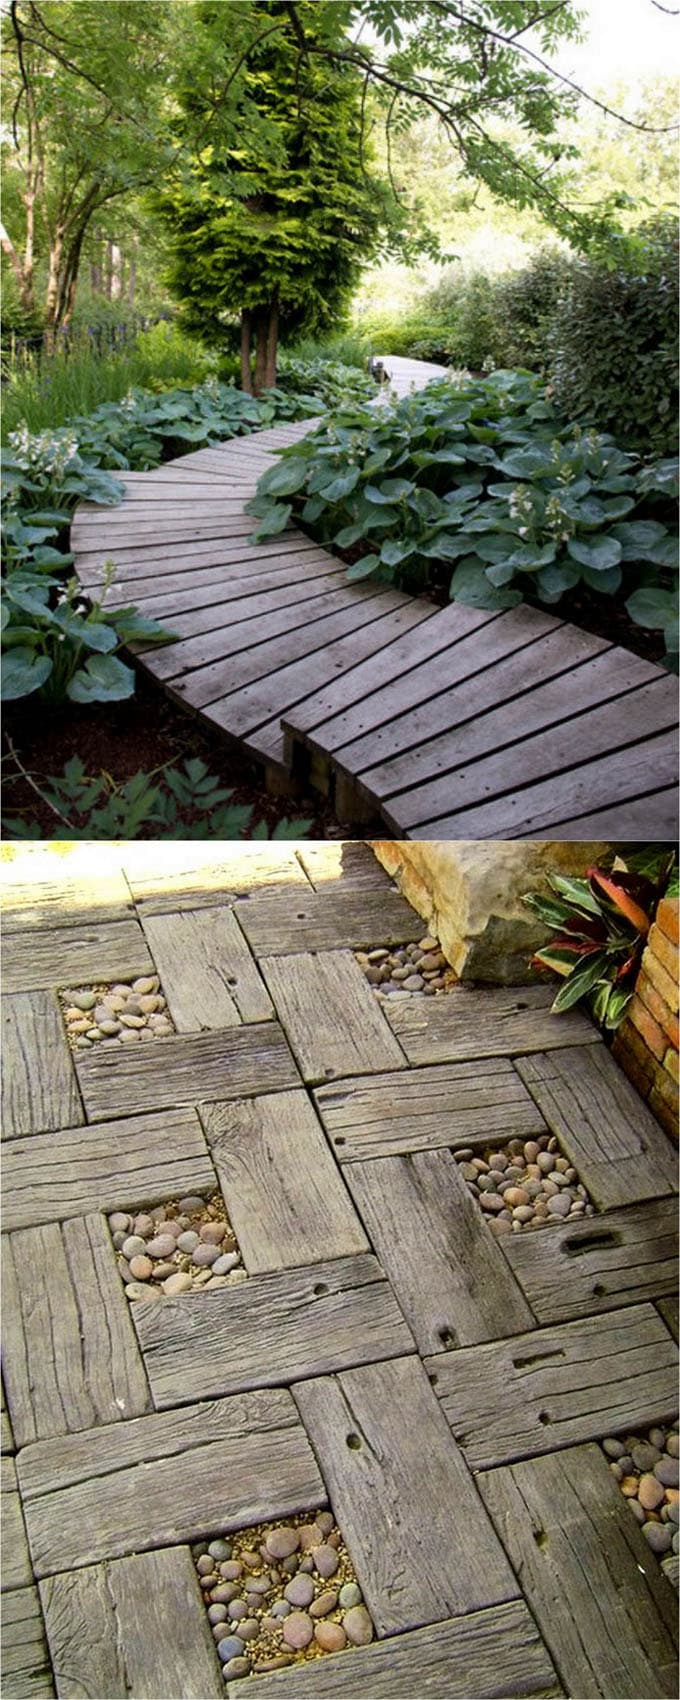 25 Most Beautiful DIY Garden Path Ideas - Page 2 of 2 - A ... on Backyard Walkway Ideas id=49365